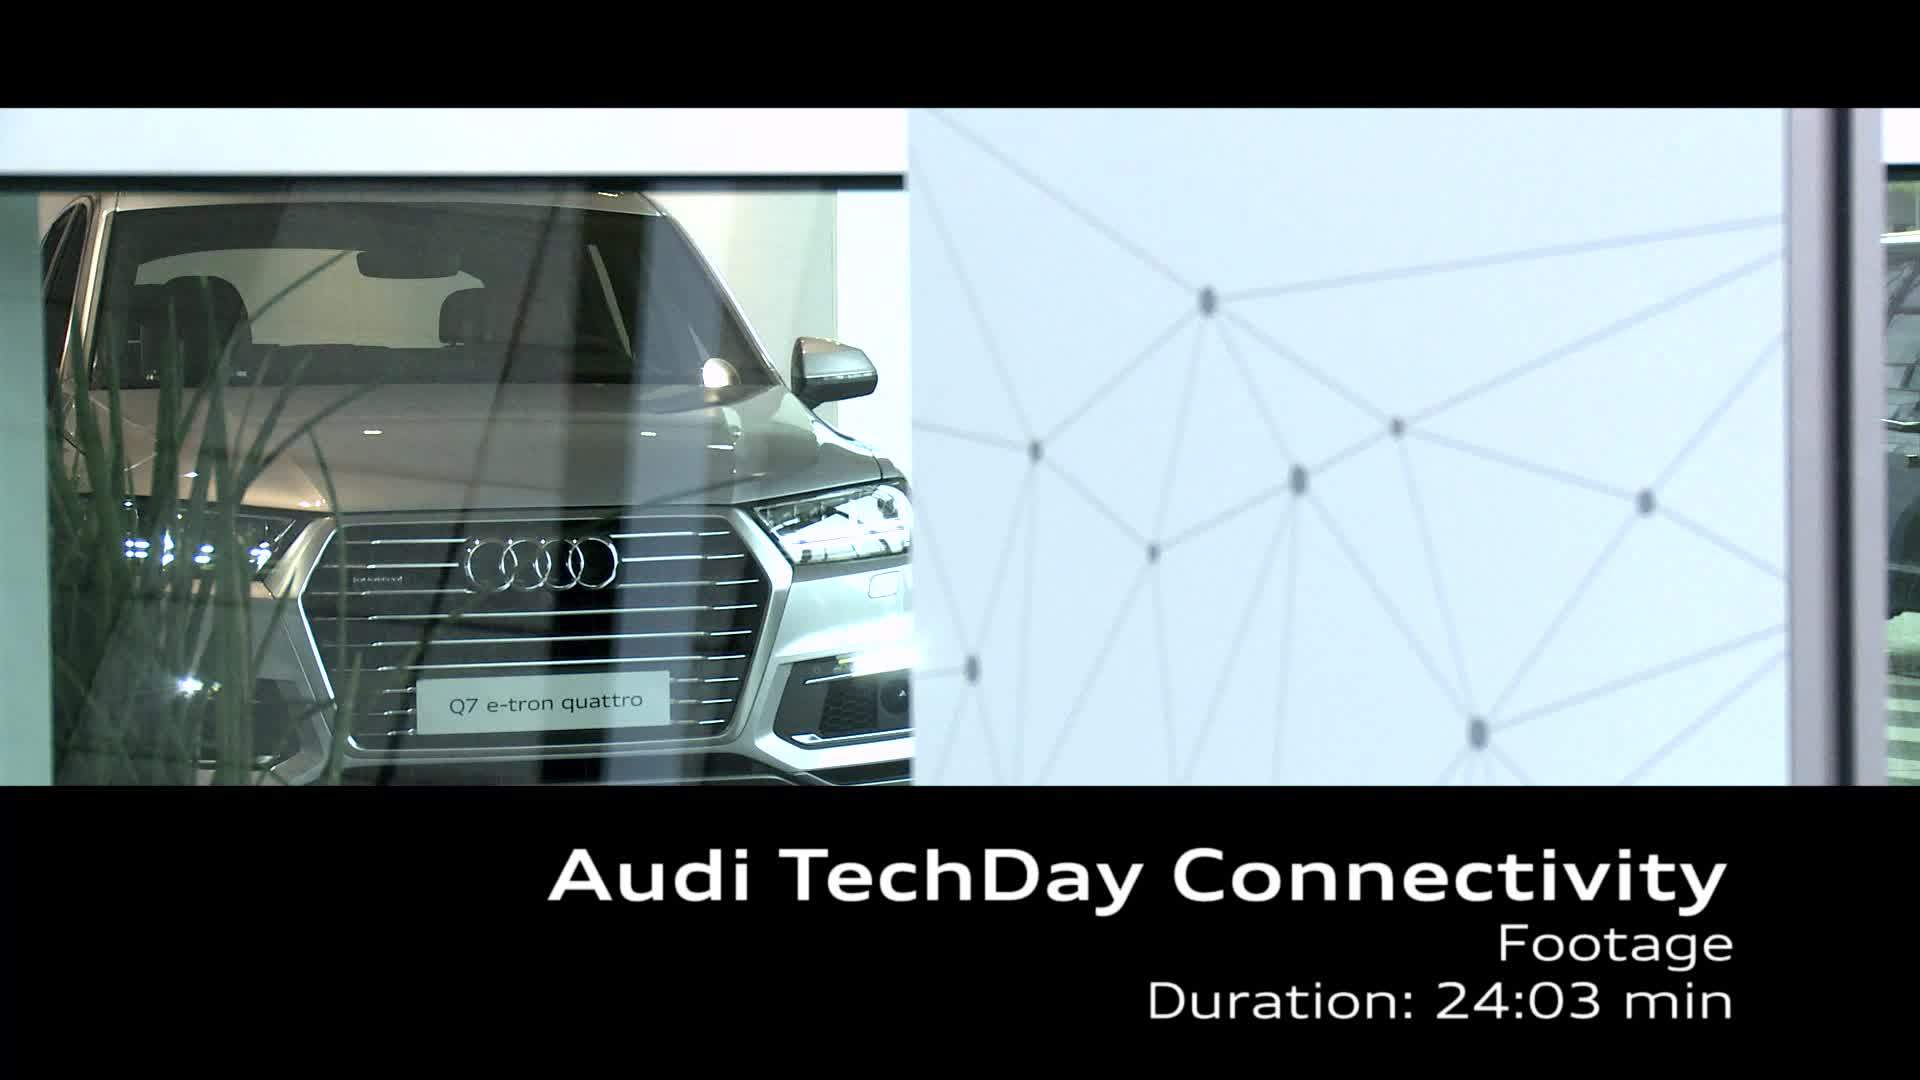 Audi TechDay Connectivity - Footage